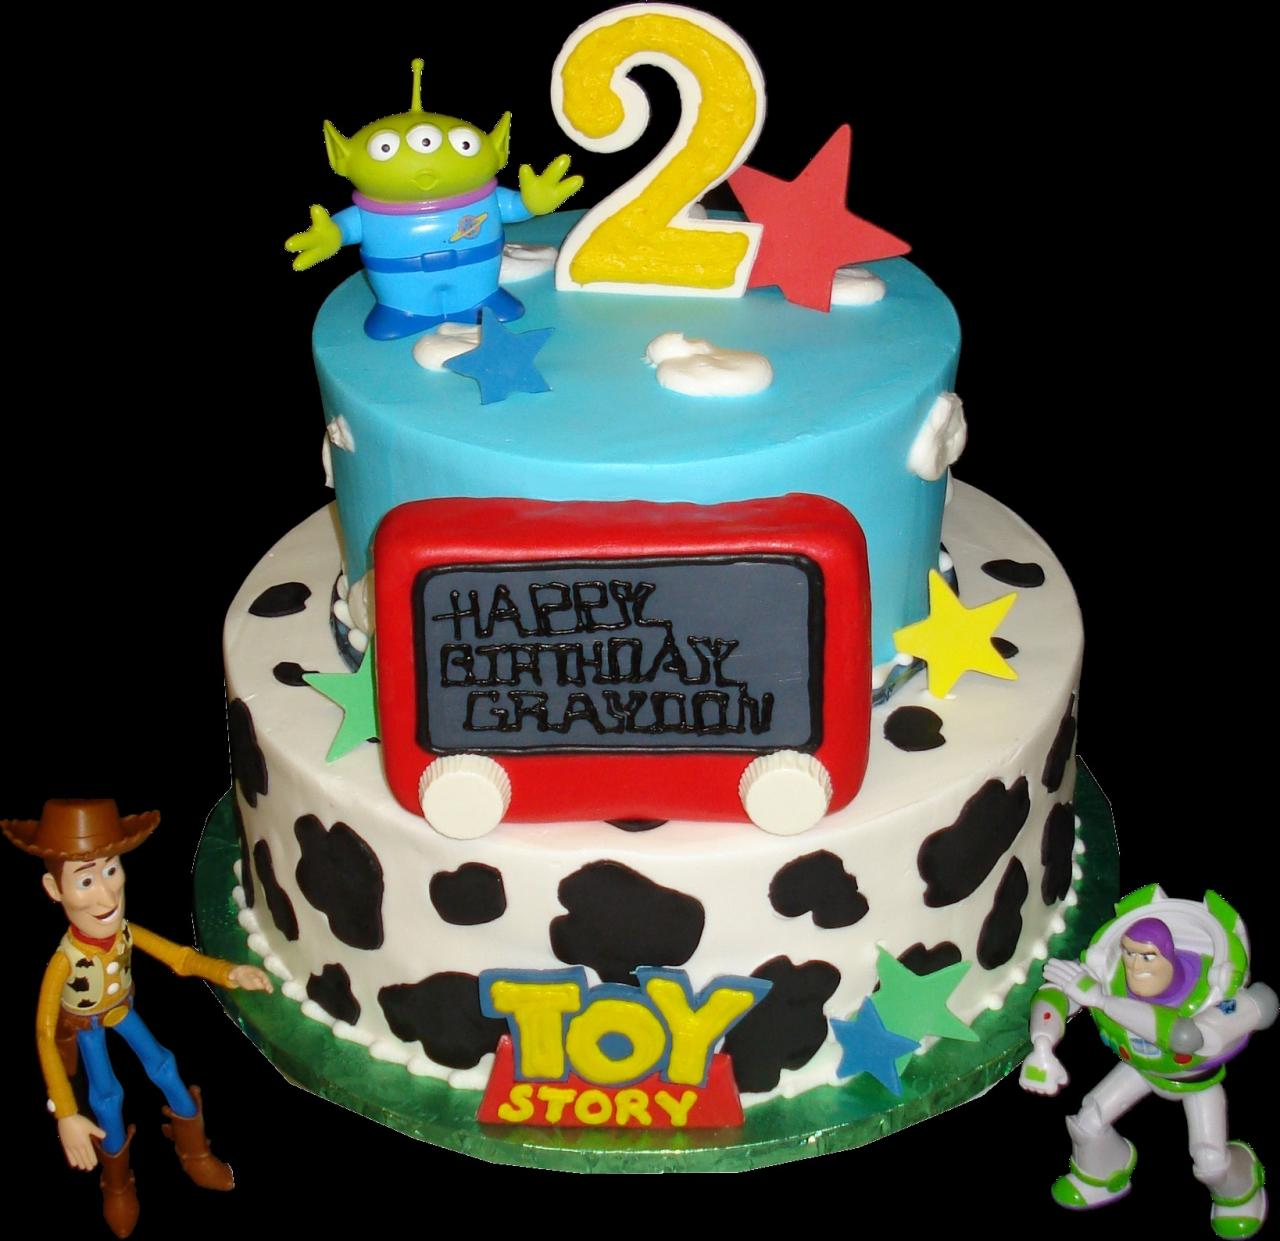 Toy Story 2nd Birthday Cake Blue And White Buttercream Iced Round 2 Tiers Decorated